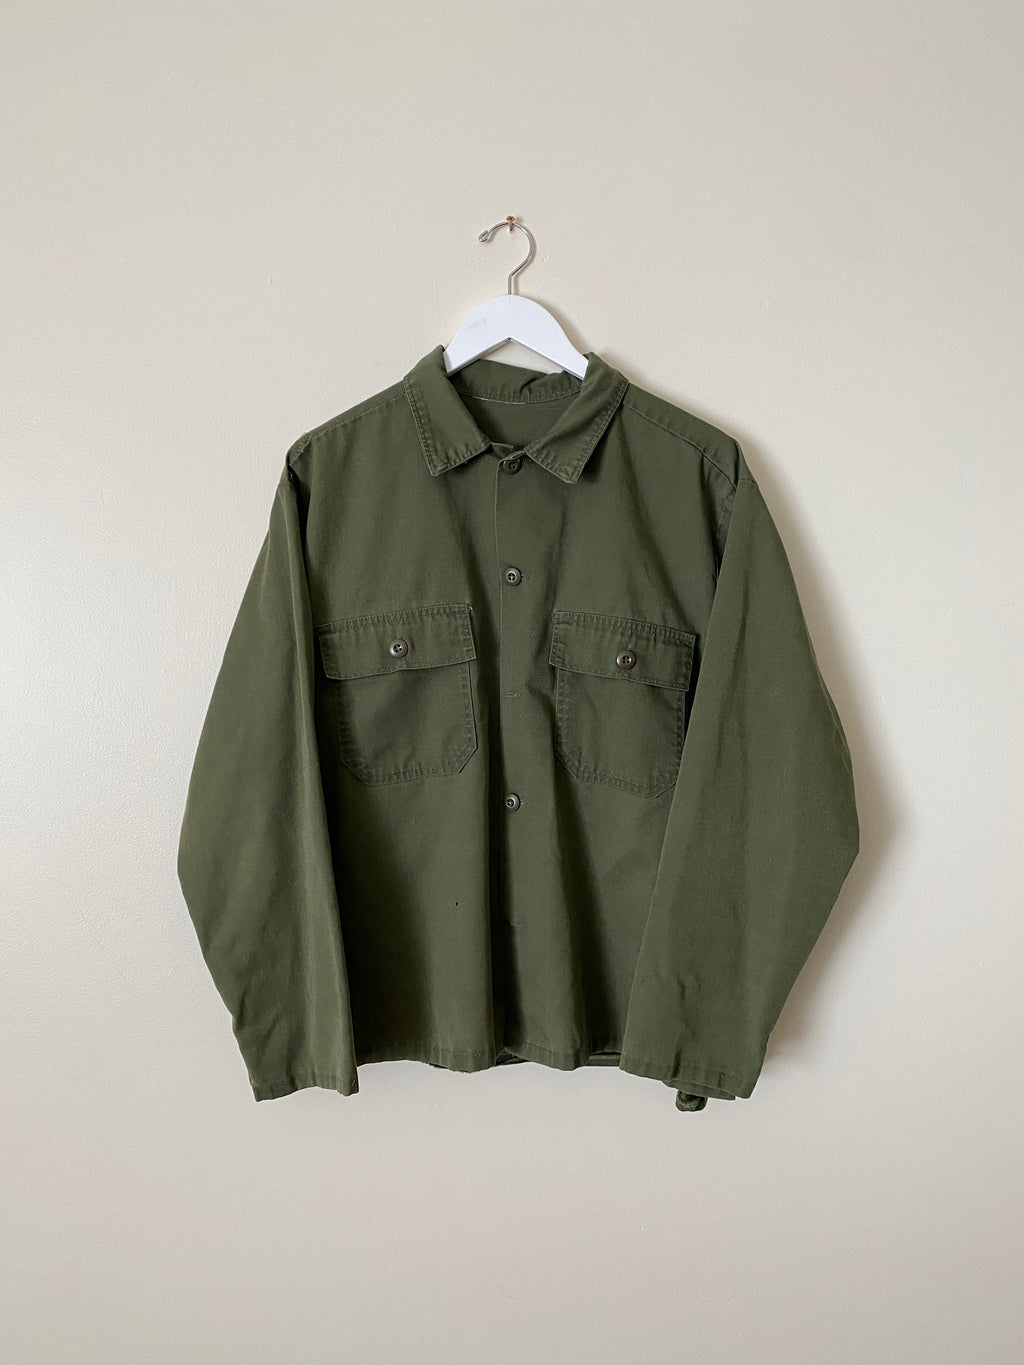 1970's Military Over Shirt (L/XL)